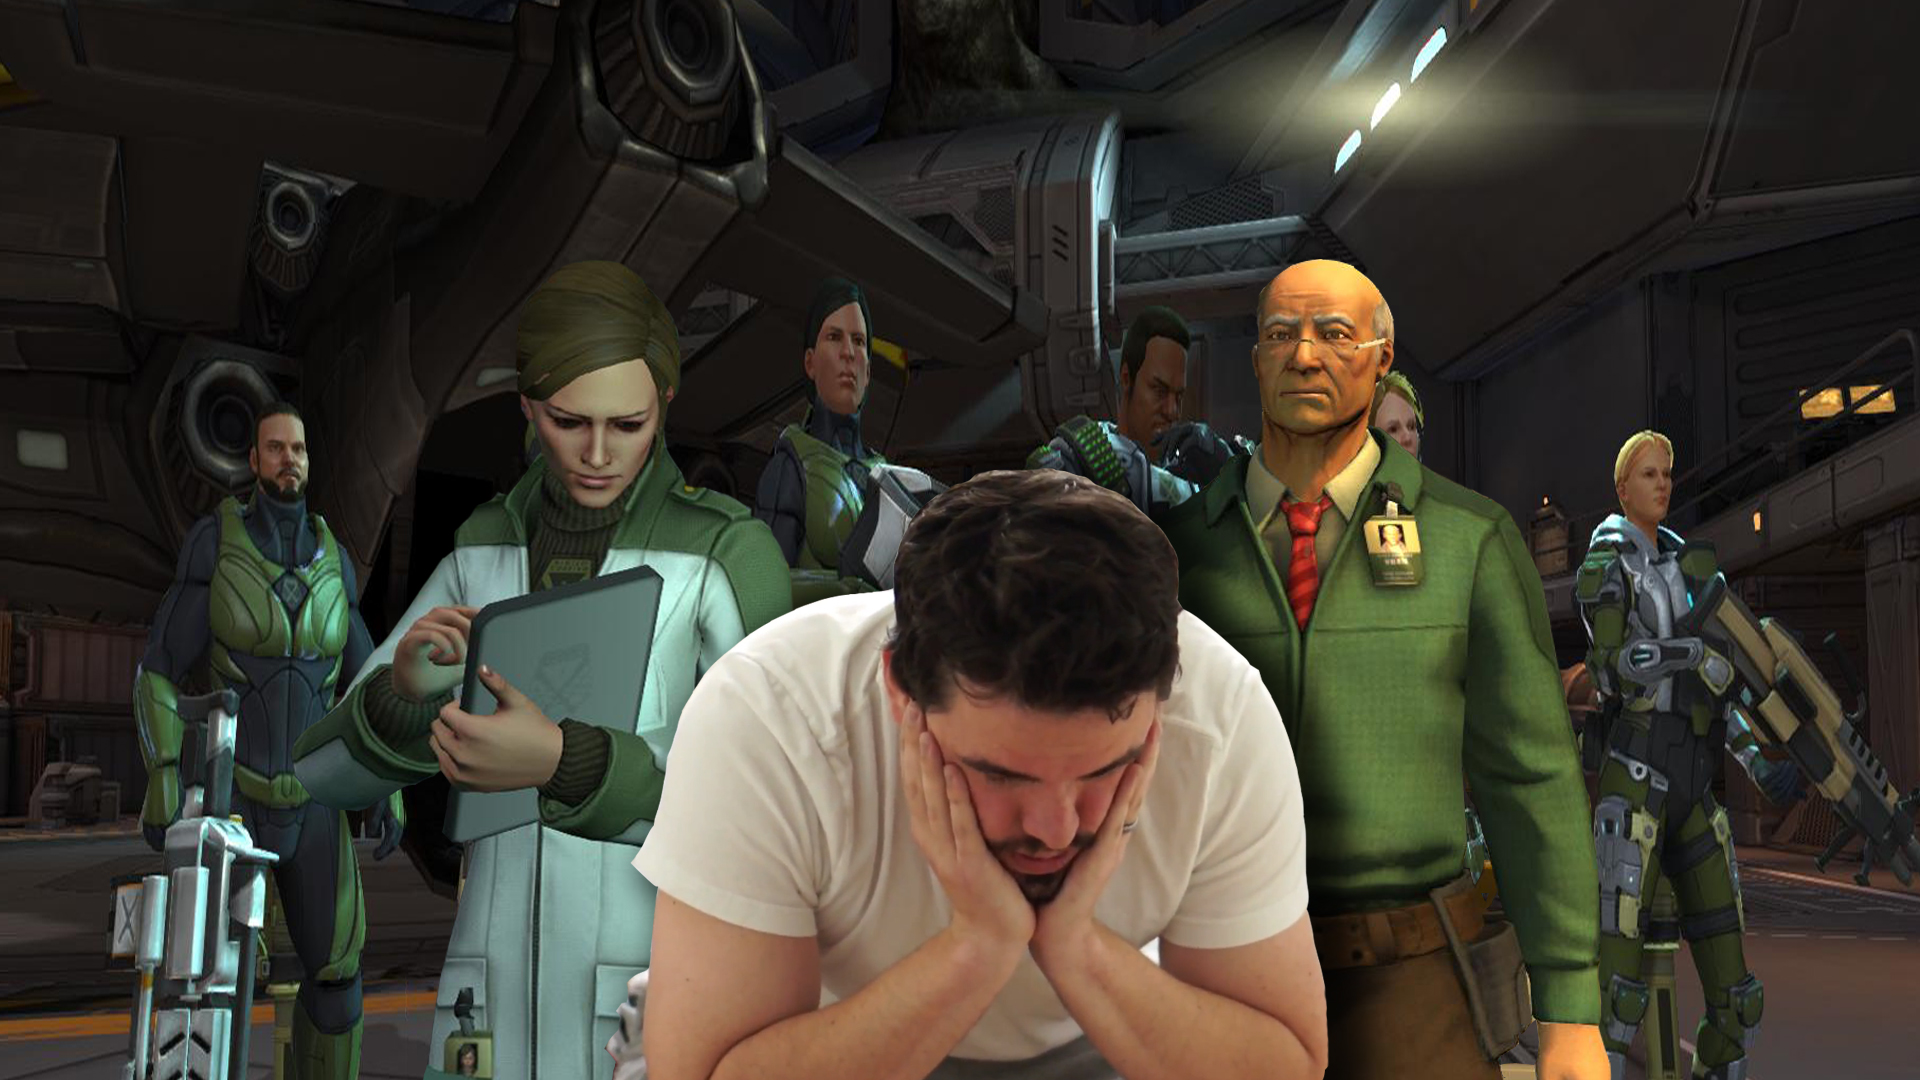 Brotabulous Moments in Gaming Episode 2: XCOM: Enemy Unknown